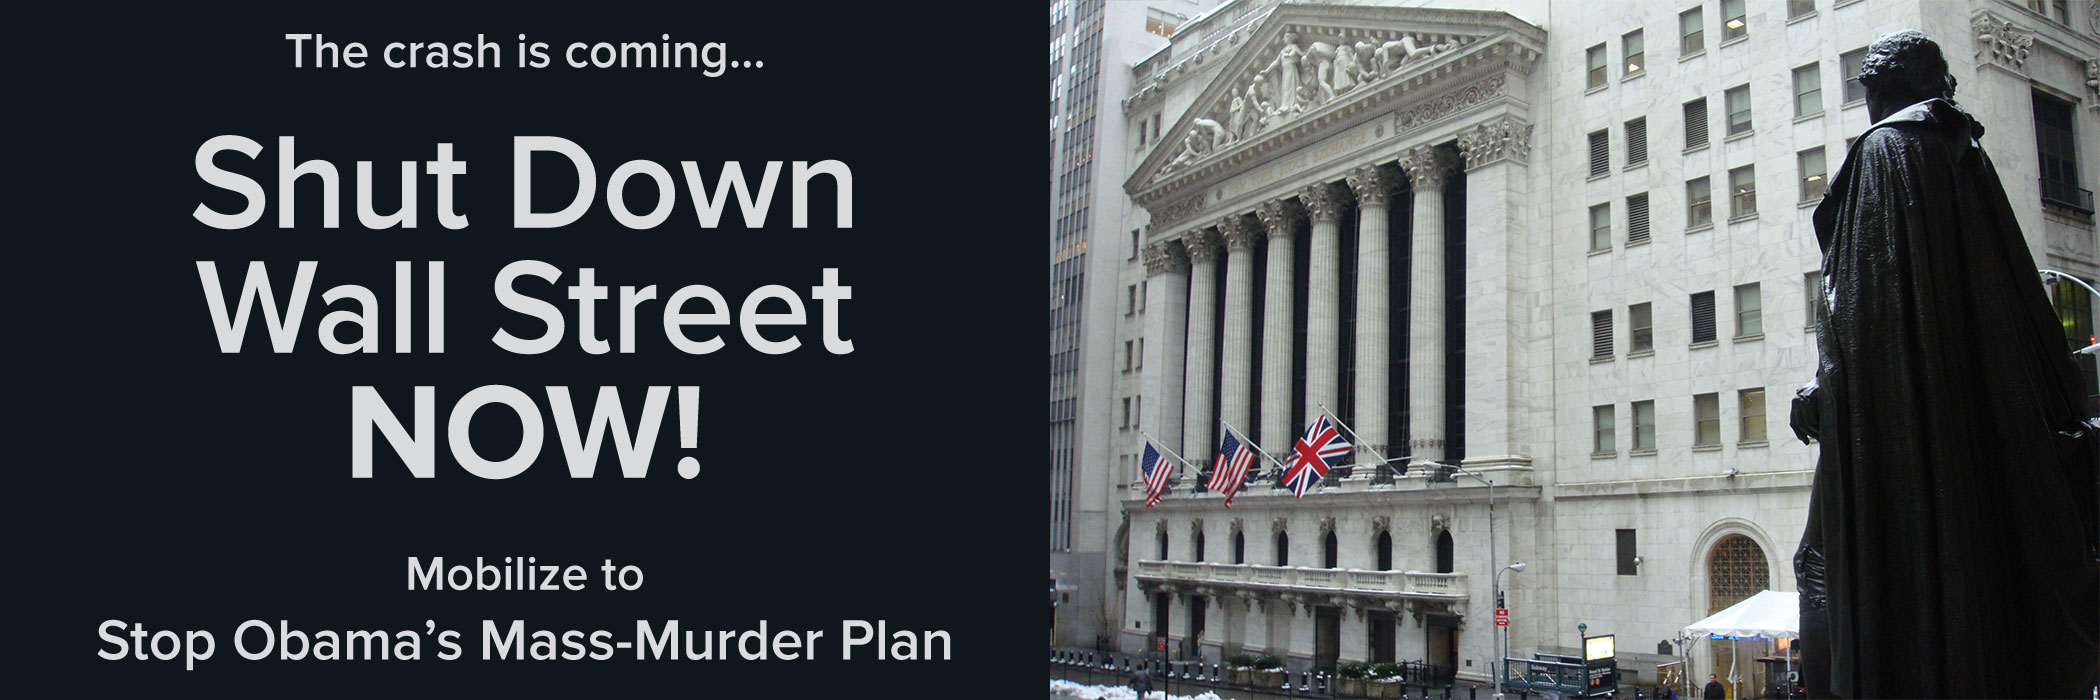 shut-down-wall-st-banner_mab-version.jpg